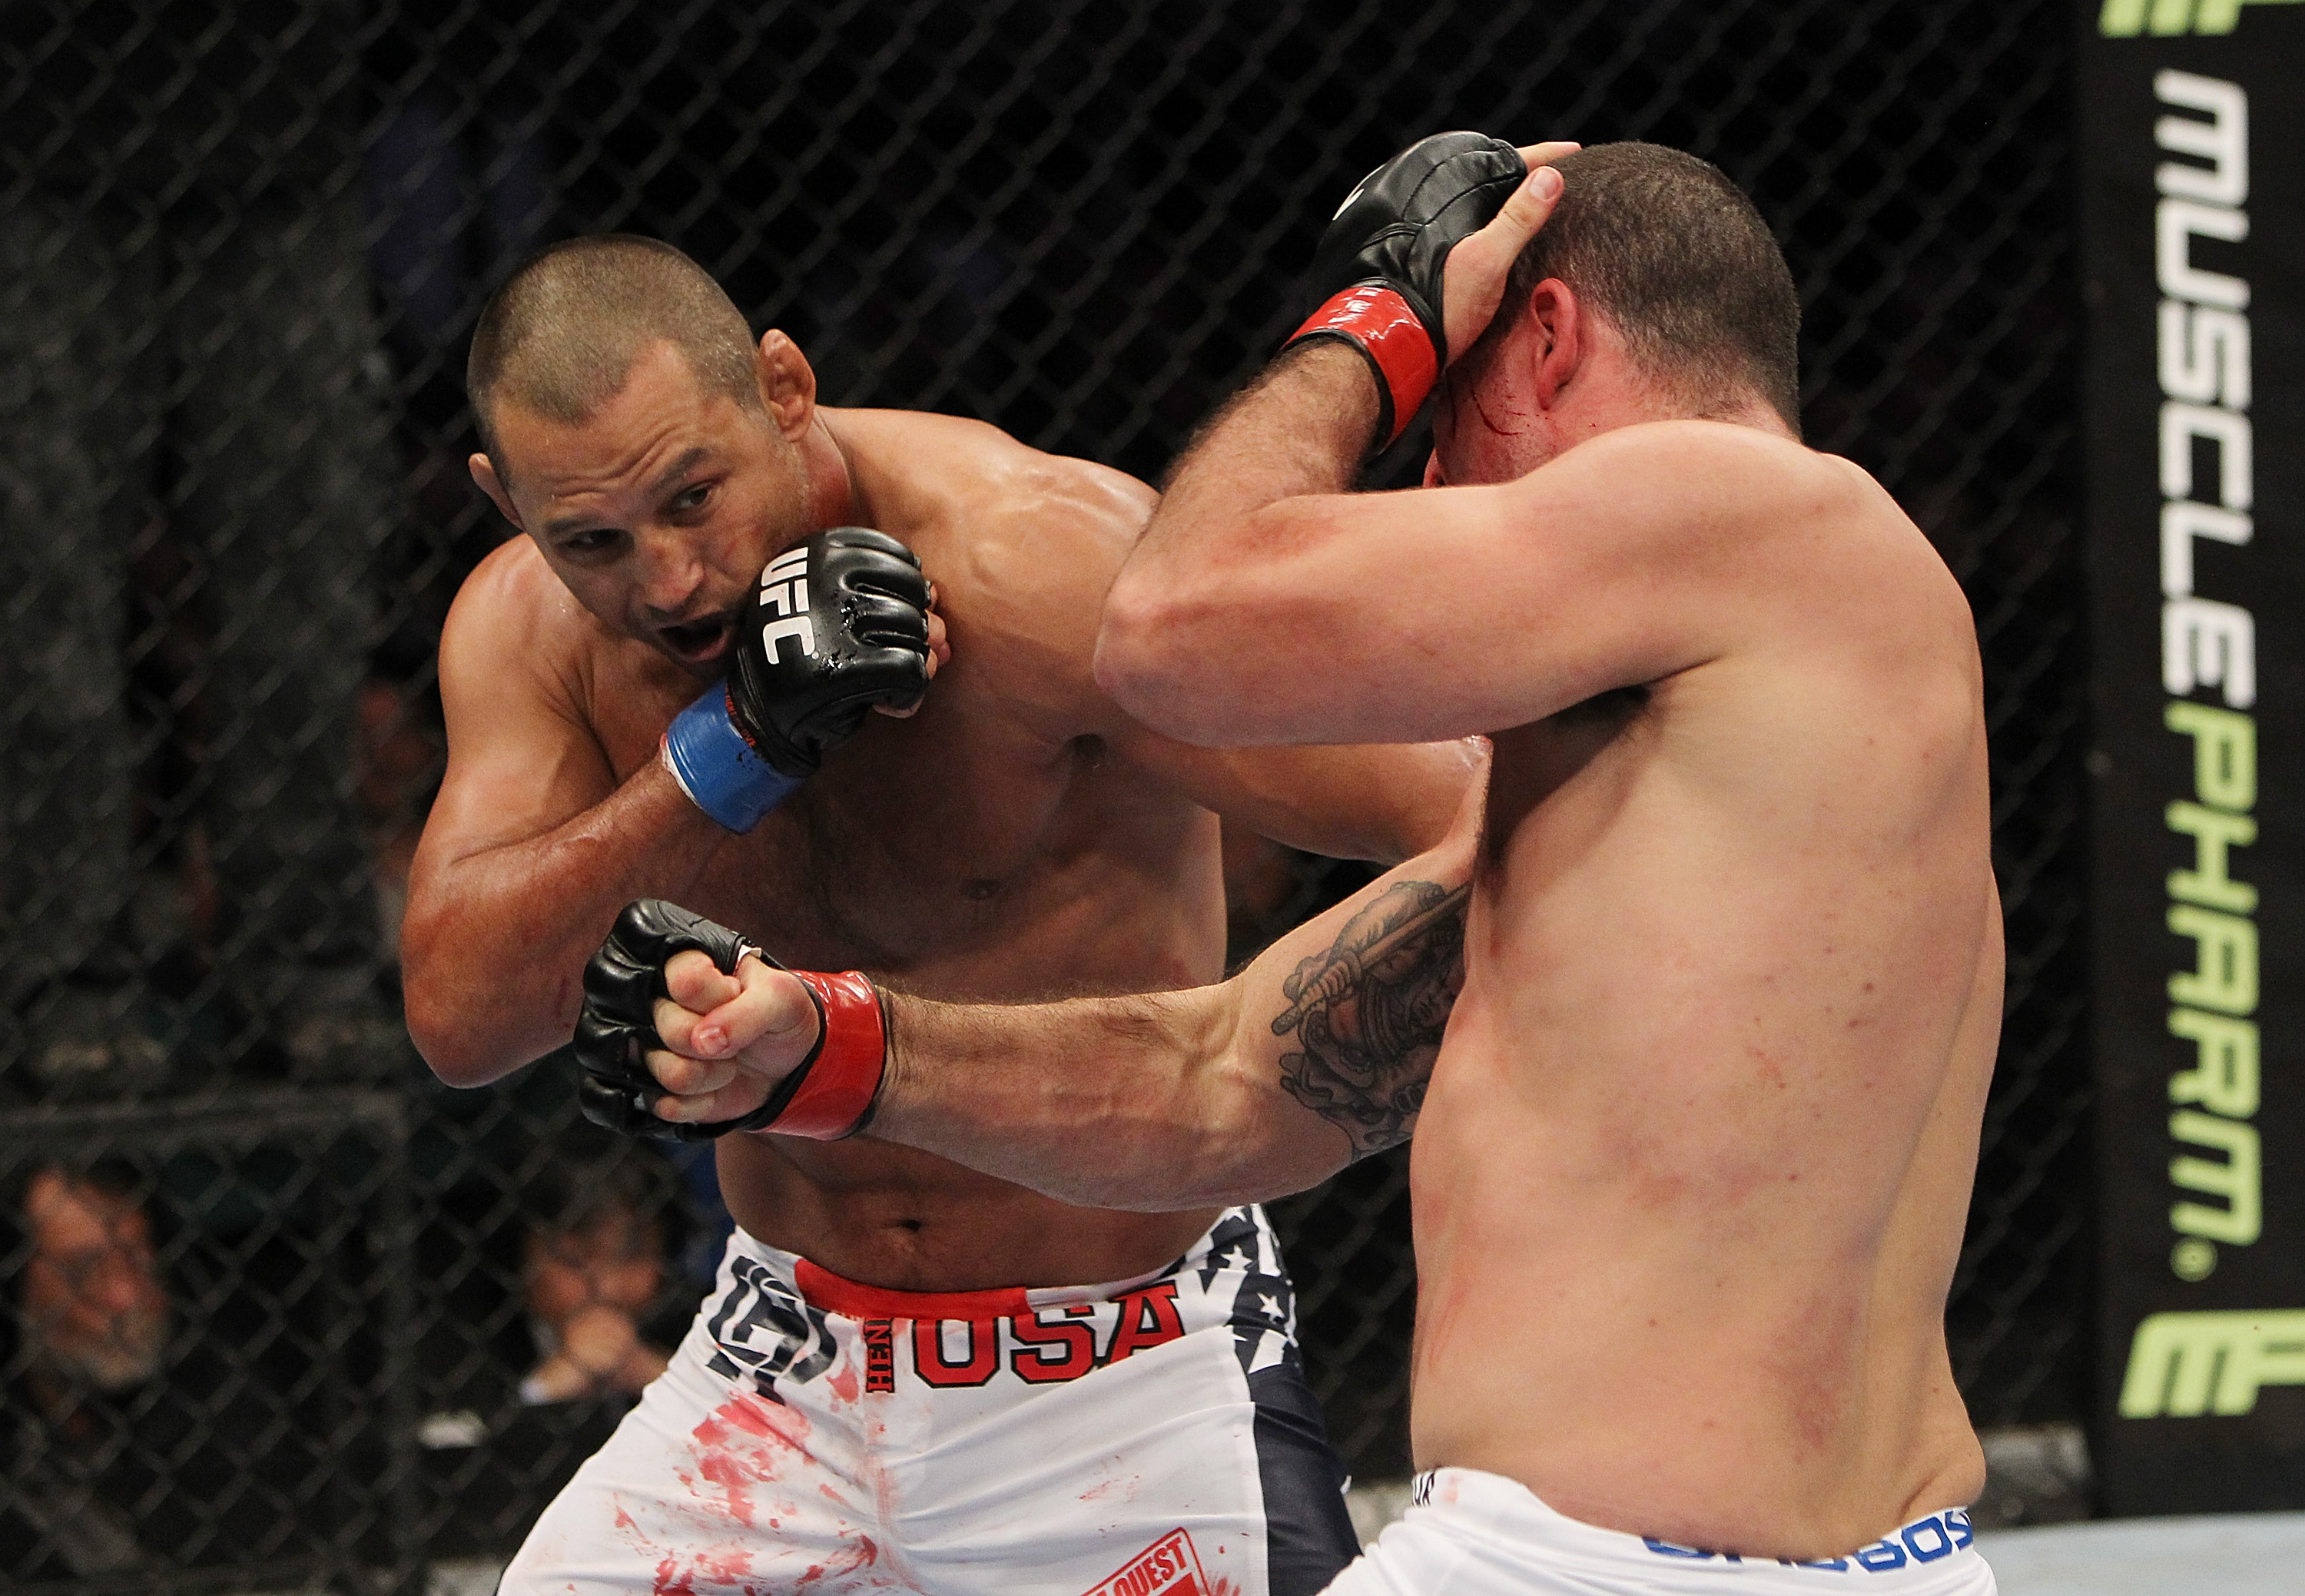 SAN JOSE, CA - NOVEMBER 19: Mauricio Rua and Dan Henderson wrap each other up during an UFC Light Heavyweight bout at the HP Pavillion on November 19, 2011 in San Jose, California.  (Photo by Josh Hedges/Zuffa LLC/Zuffa LLC via Getty Images)